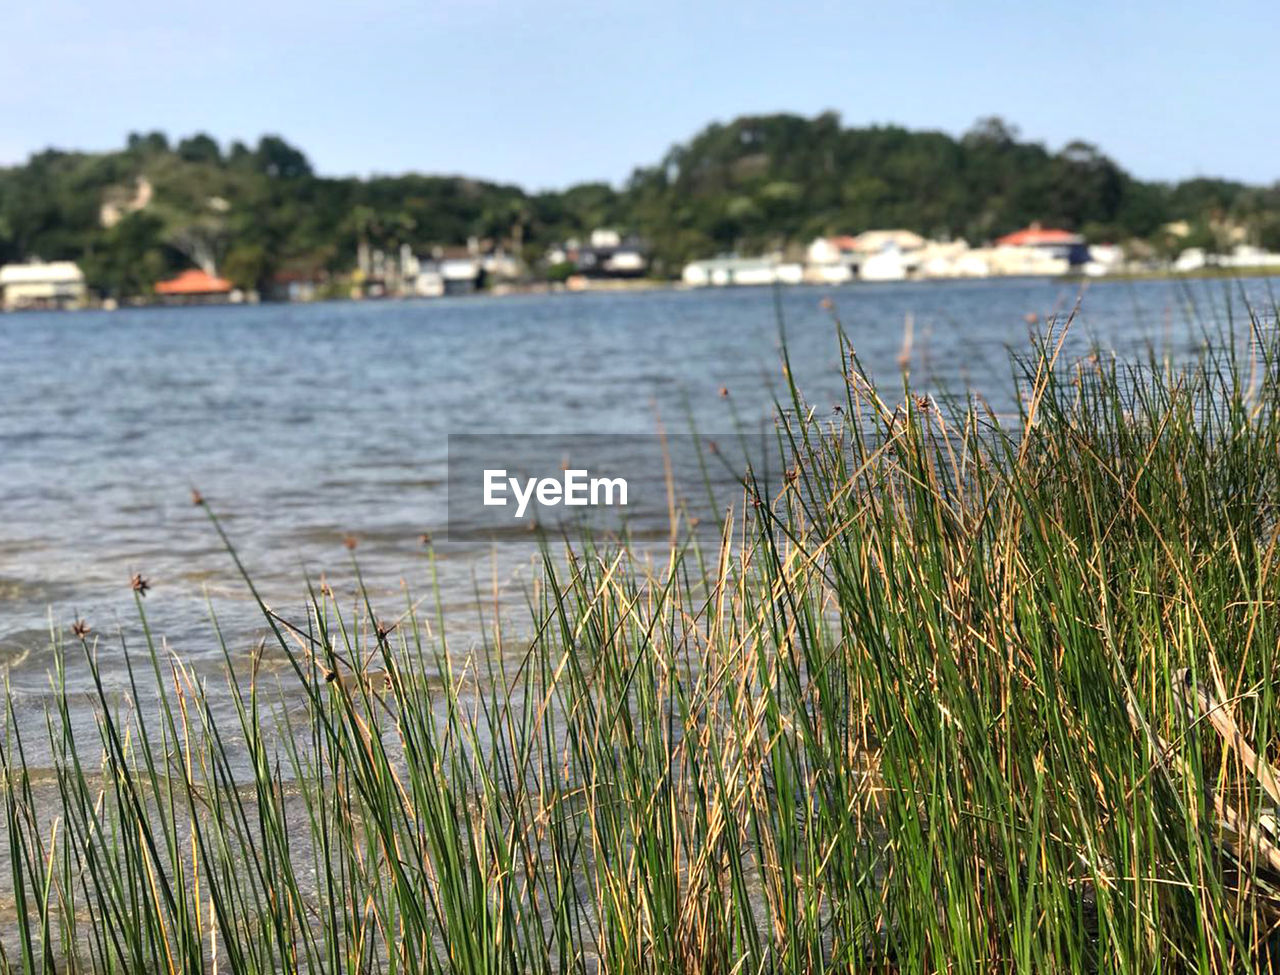 water, plant, growth, tranquility, nature, grass, day, beauty in nature, focus on foreground, sea, tranquil scene, beach, land, no people, sky, scenics - nature, outdoors, clear sky, marram grass